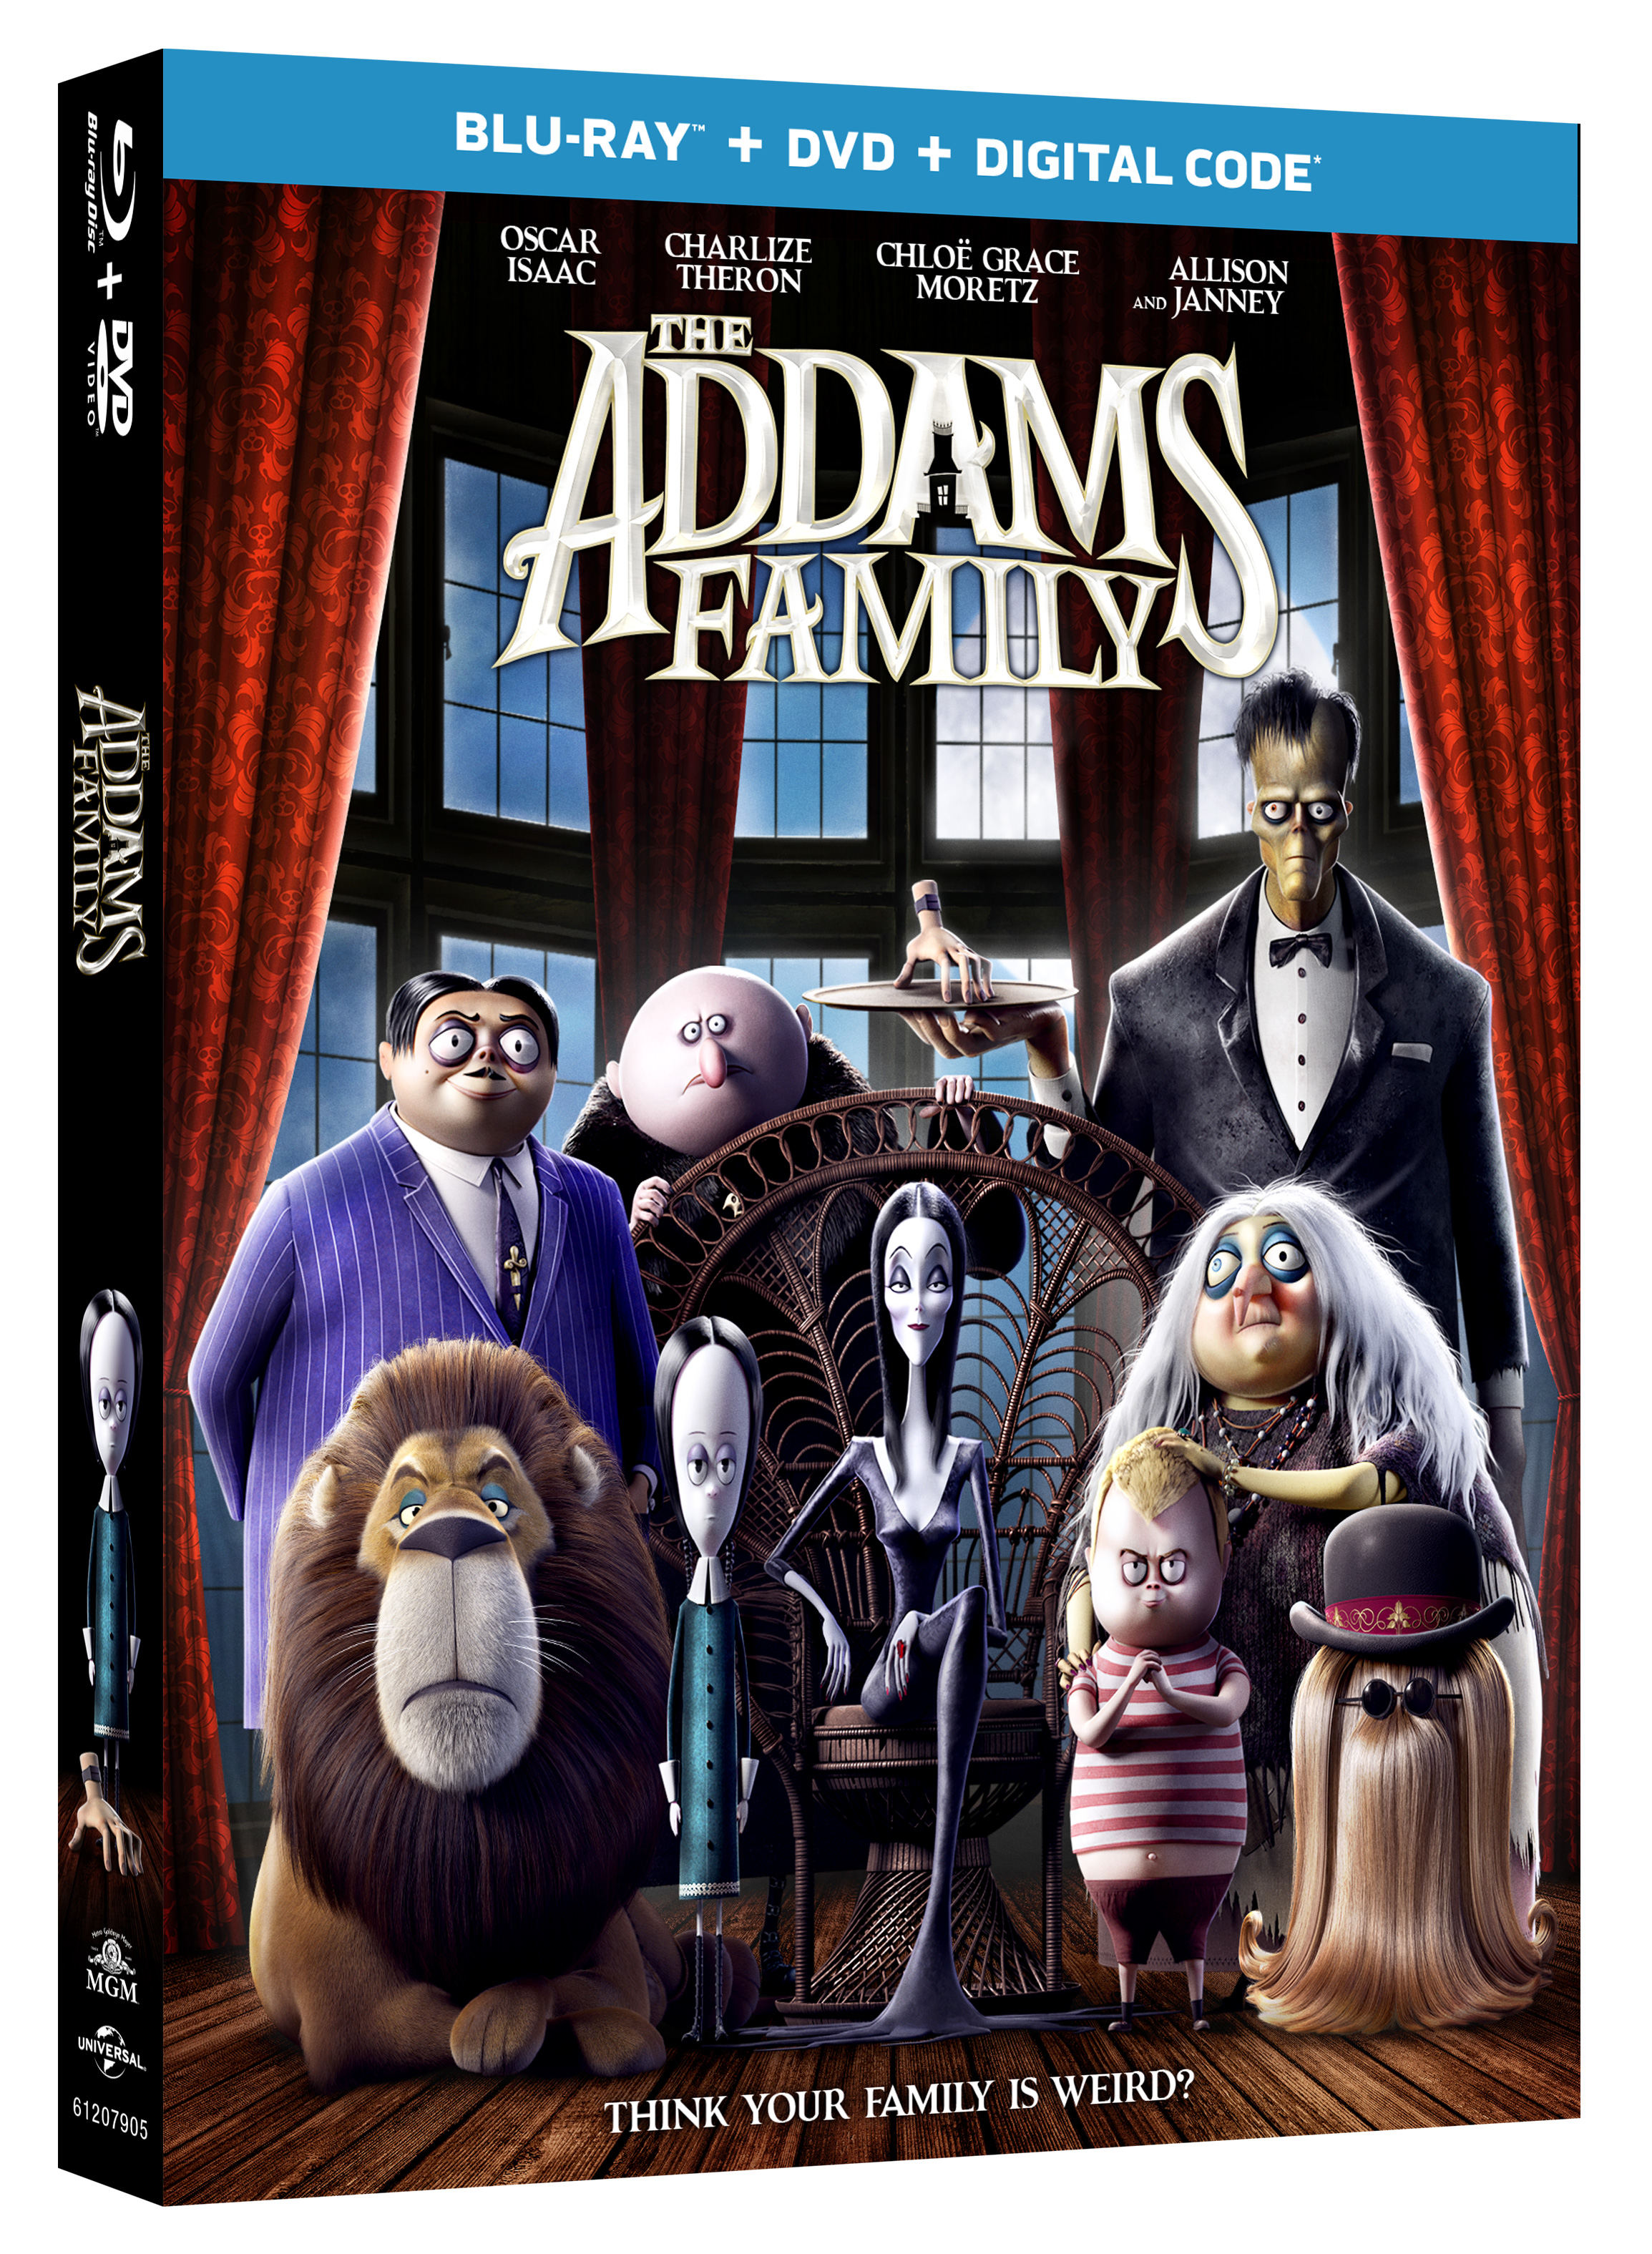 La Película Animada de la Familia Addams en Blu-ray, DVD, Digital y On Demand